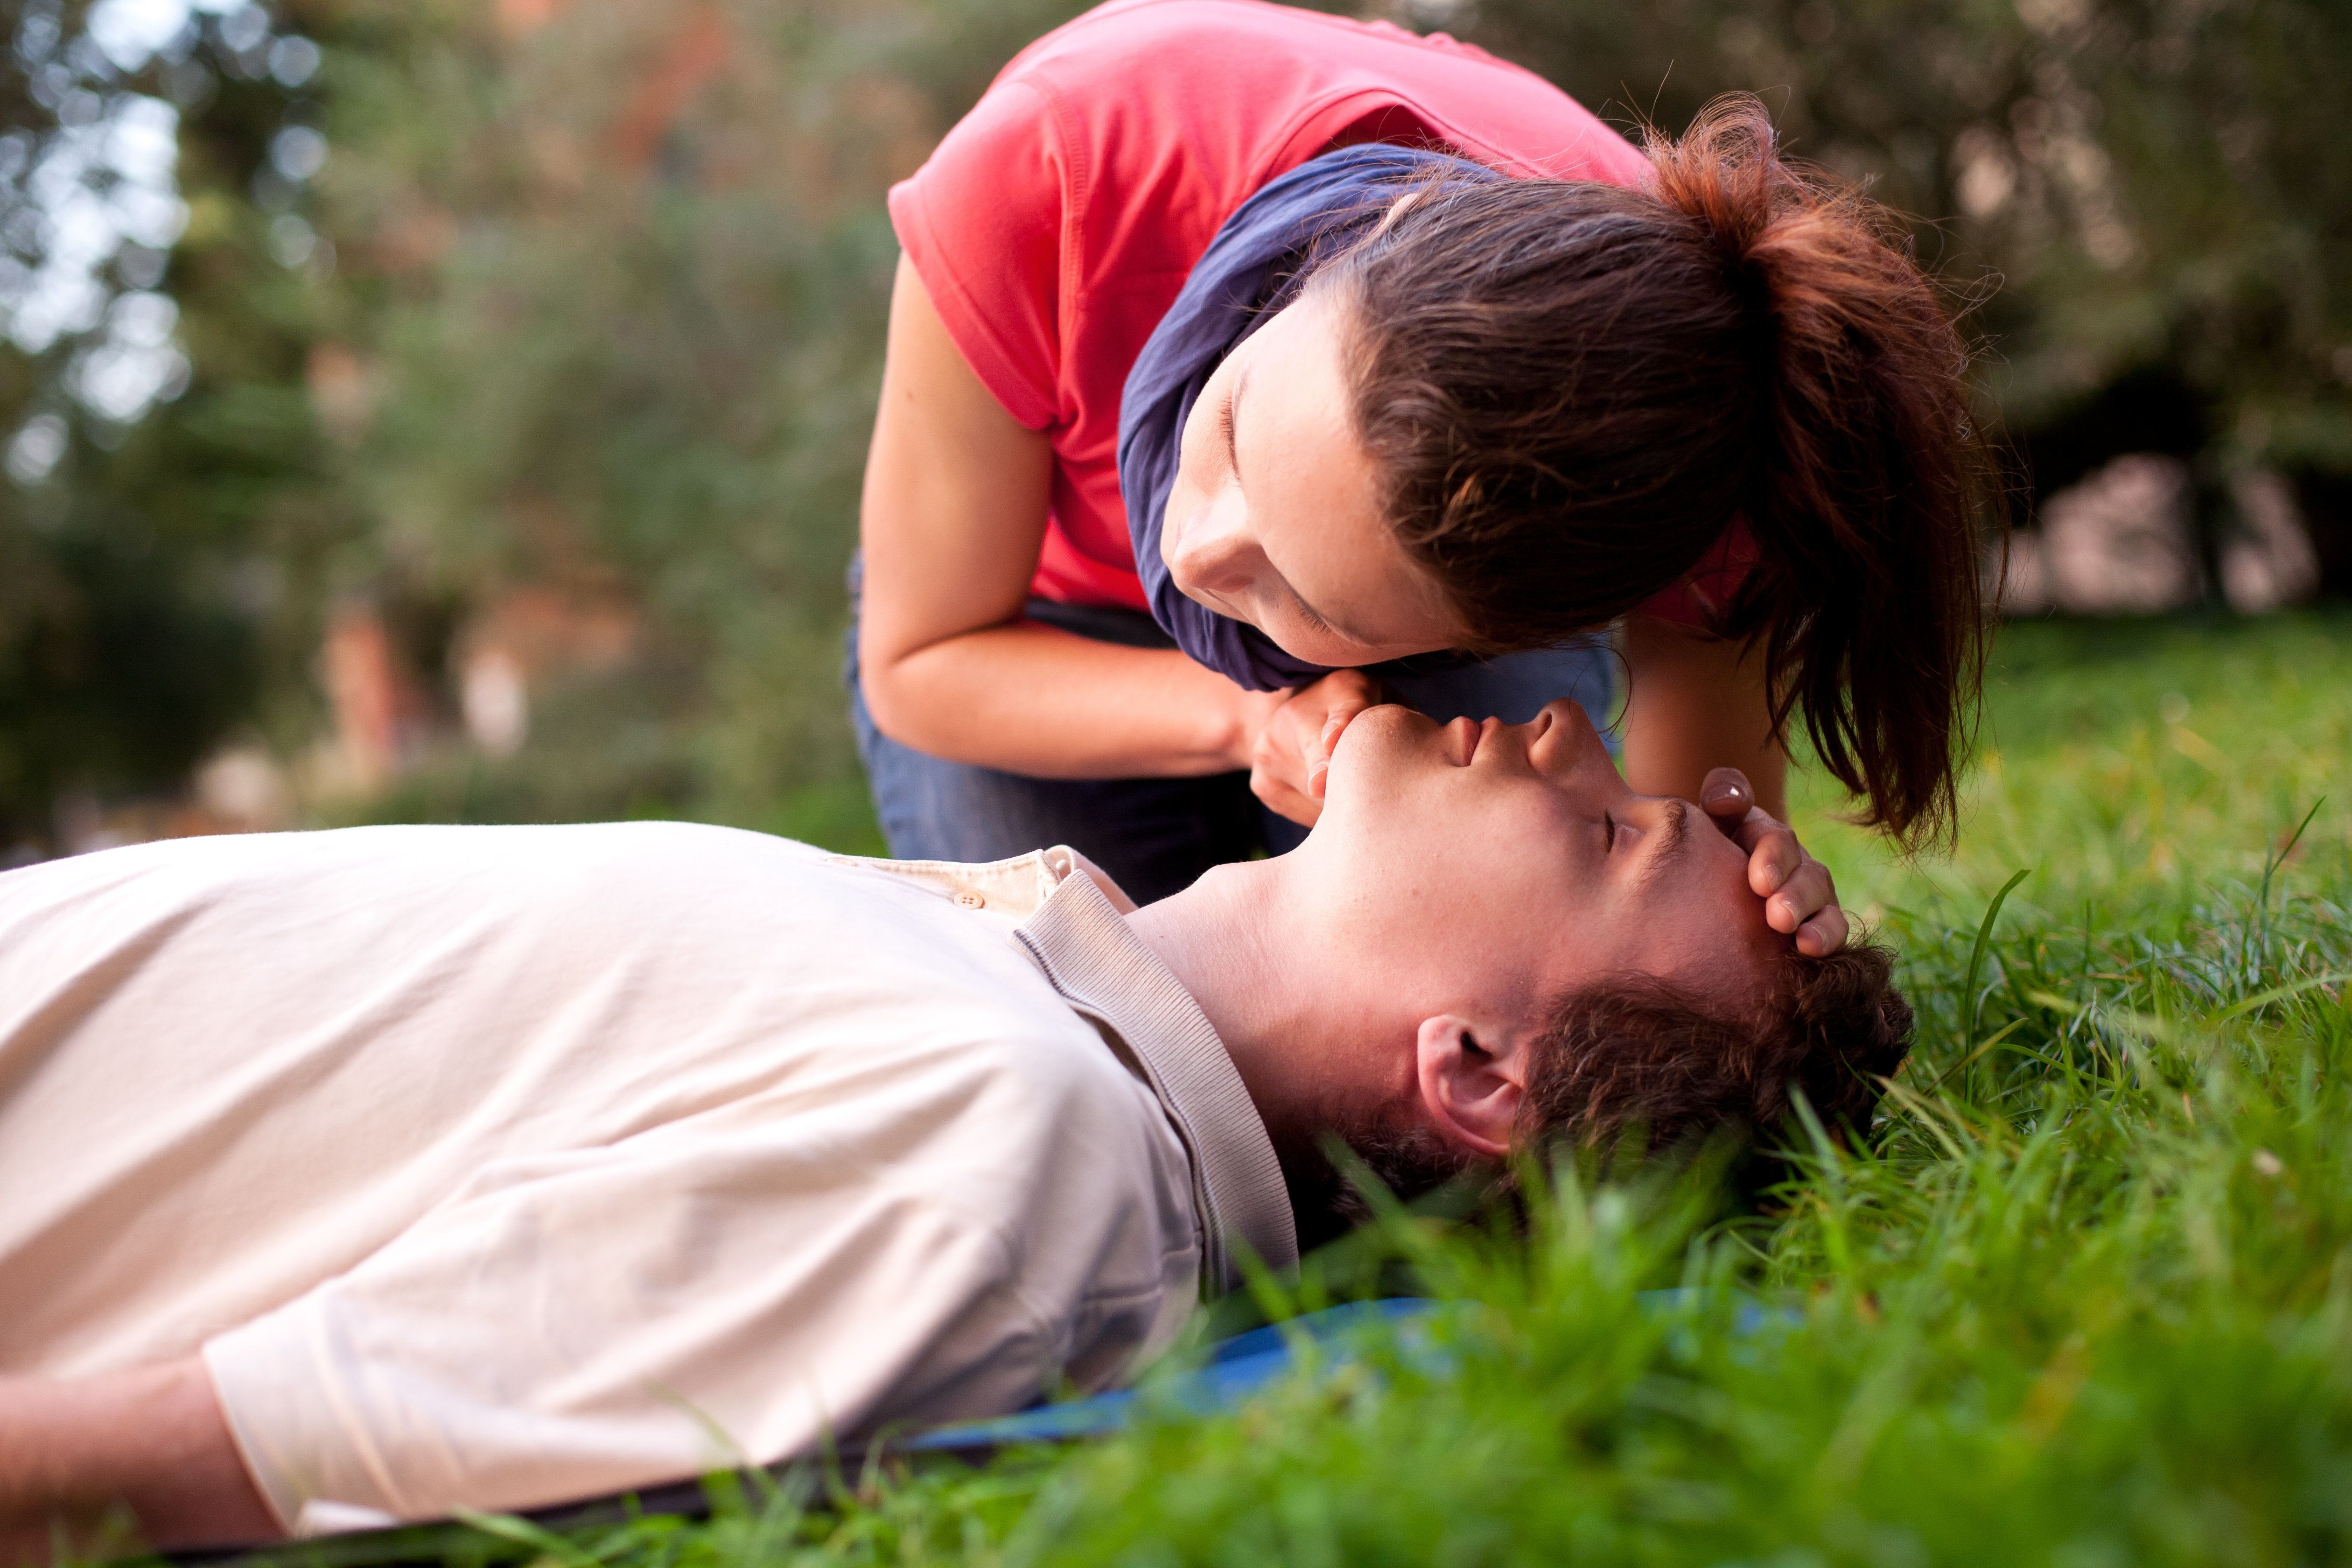 If You Don't Know First Aid, Here Are 5 Tips For Saving Someone's